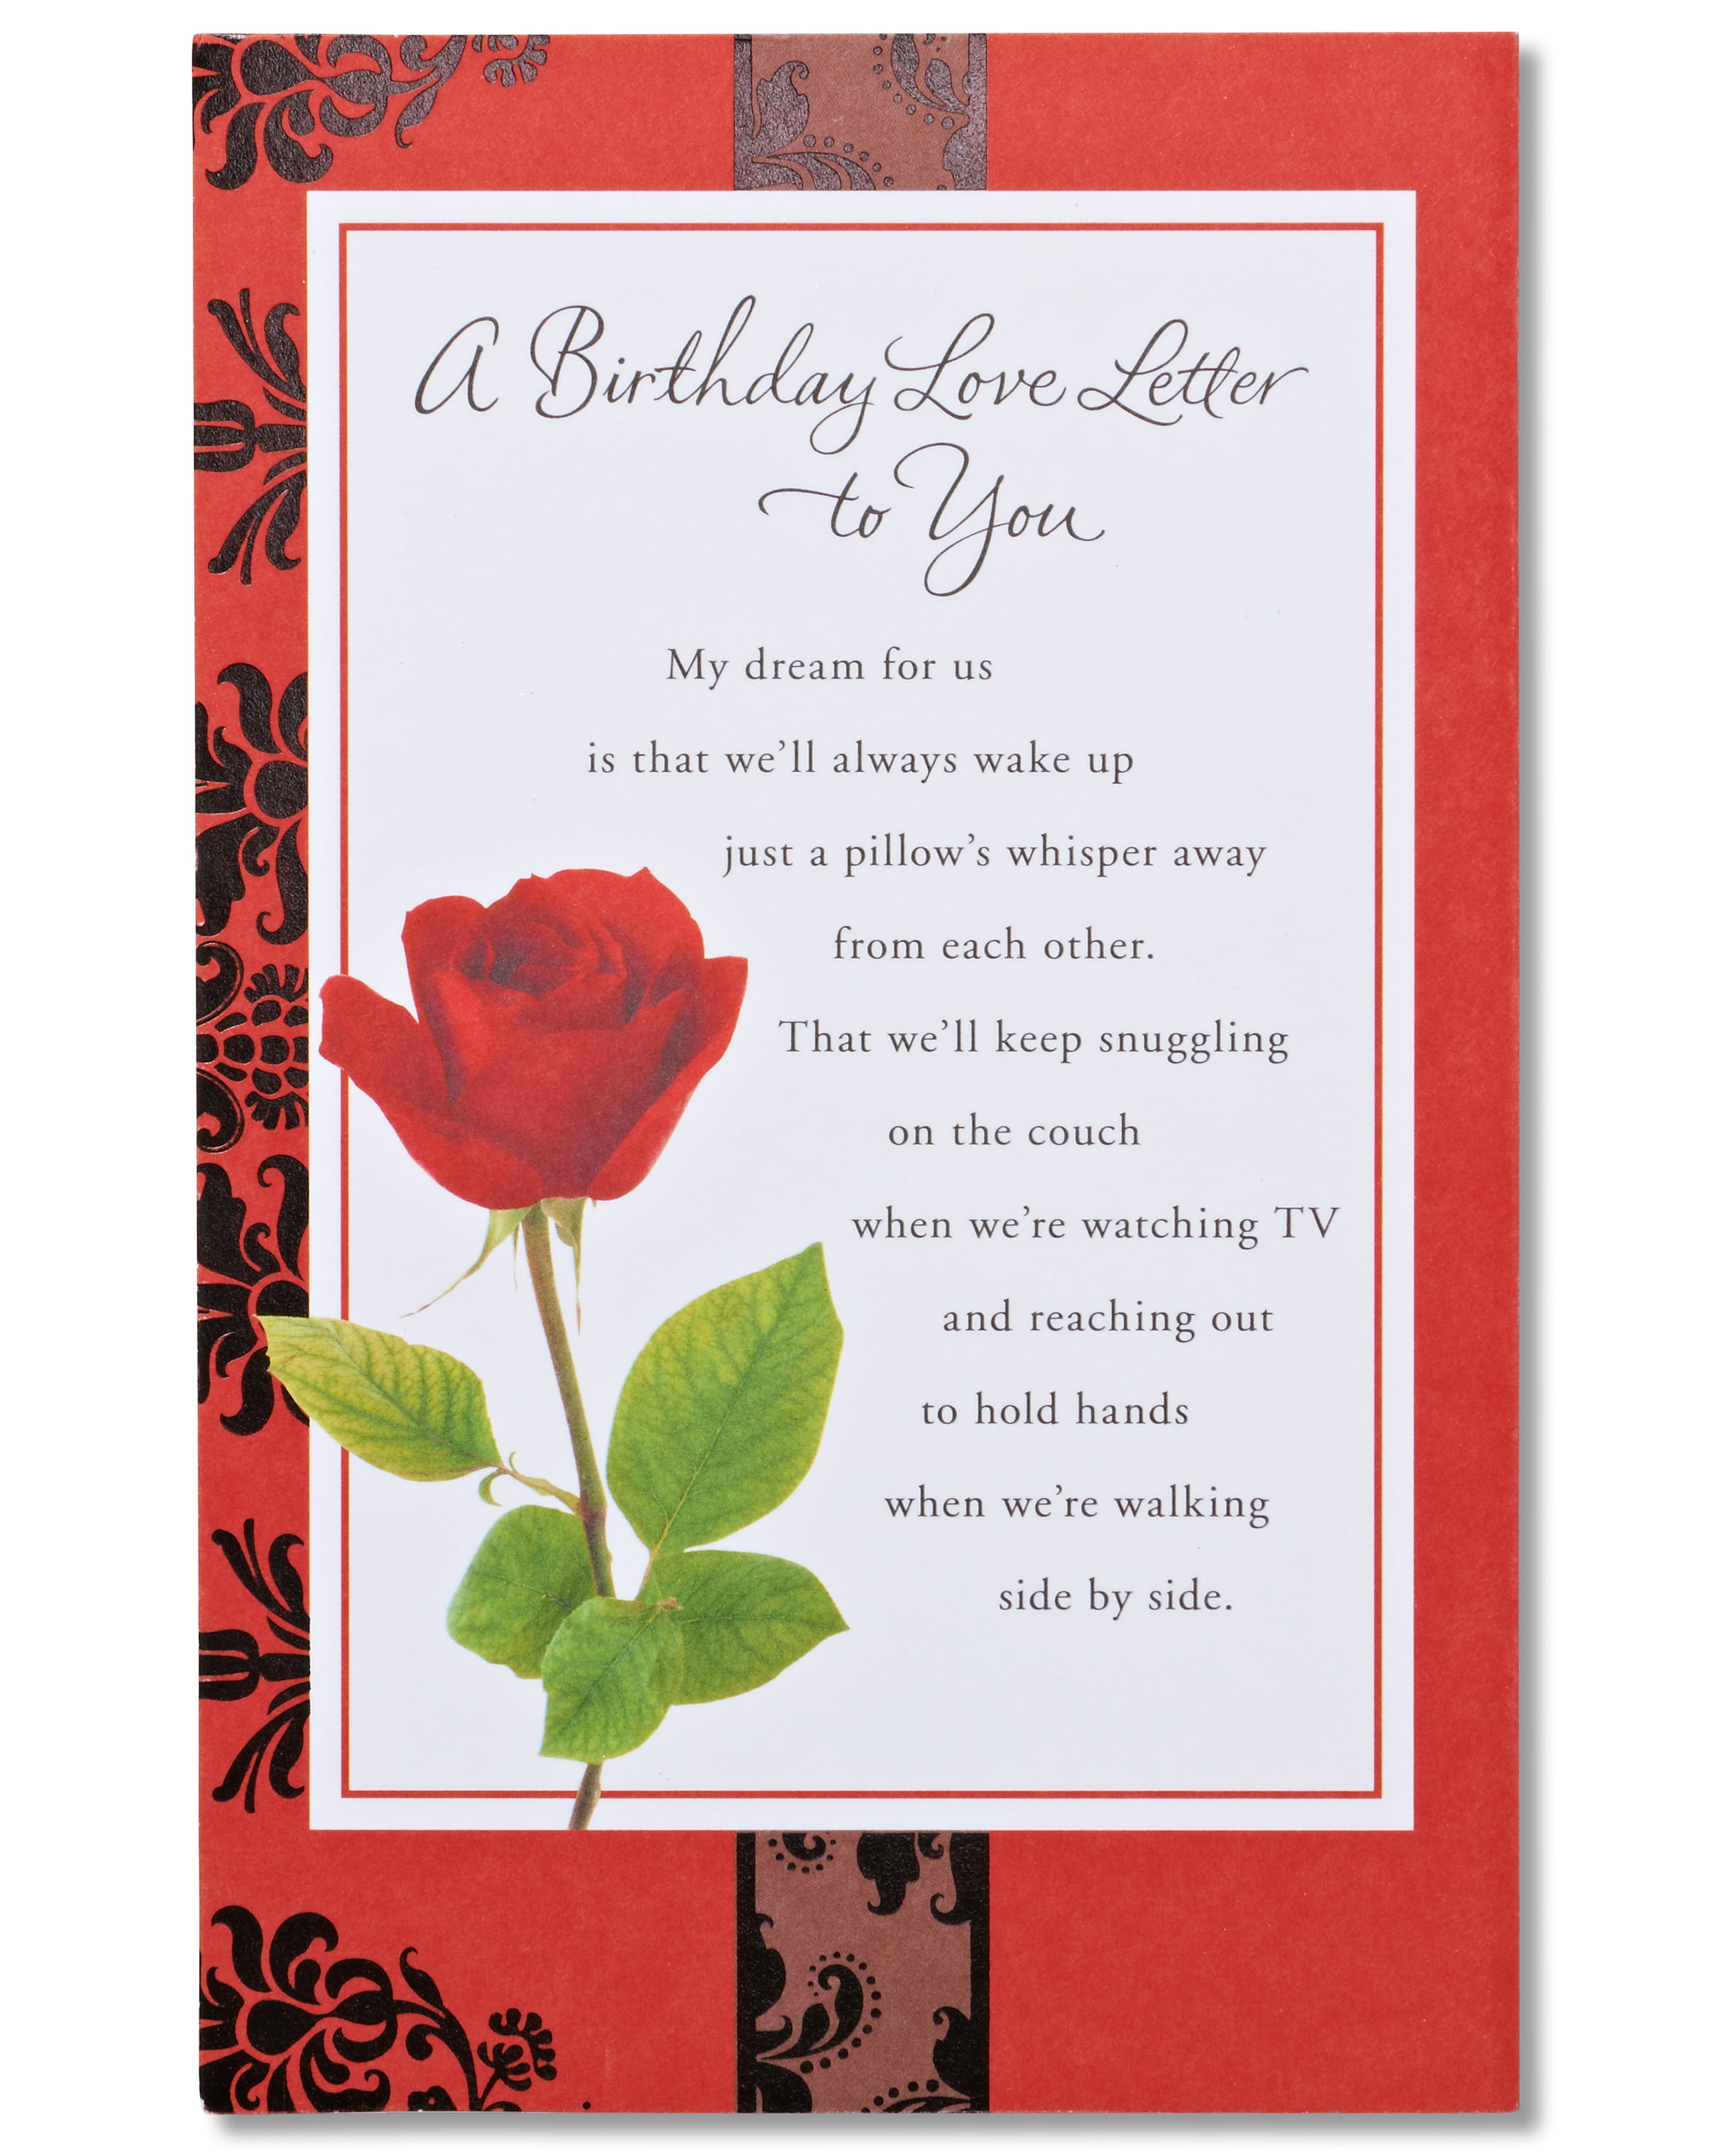 American Greetings Love Letter Birthday Card For Sweetheart